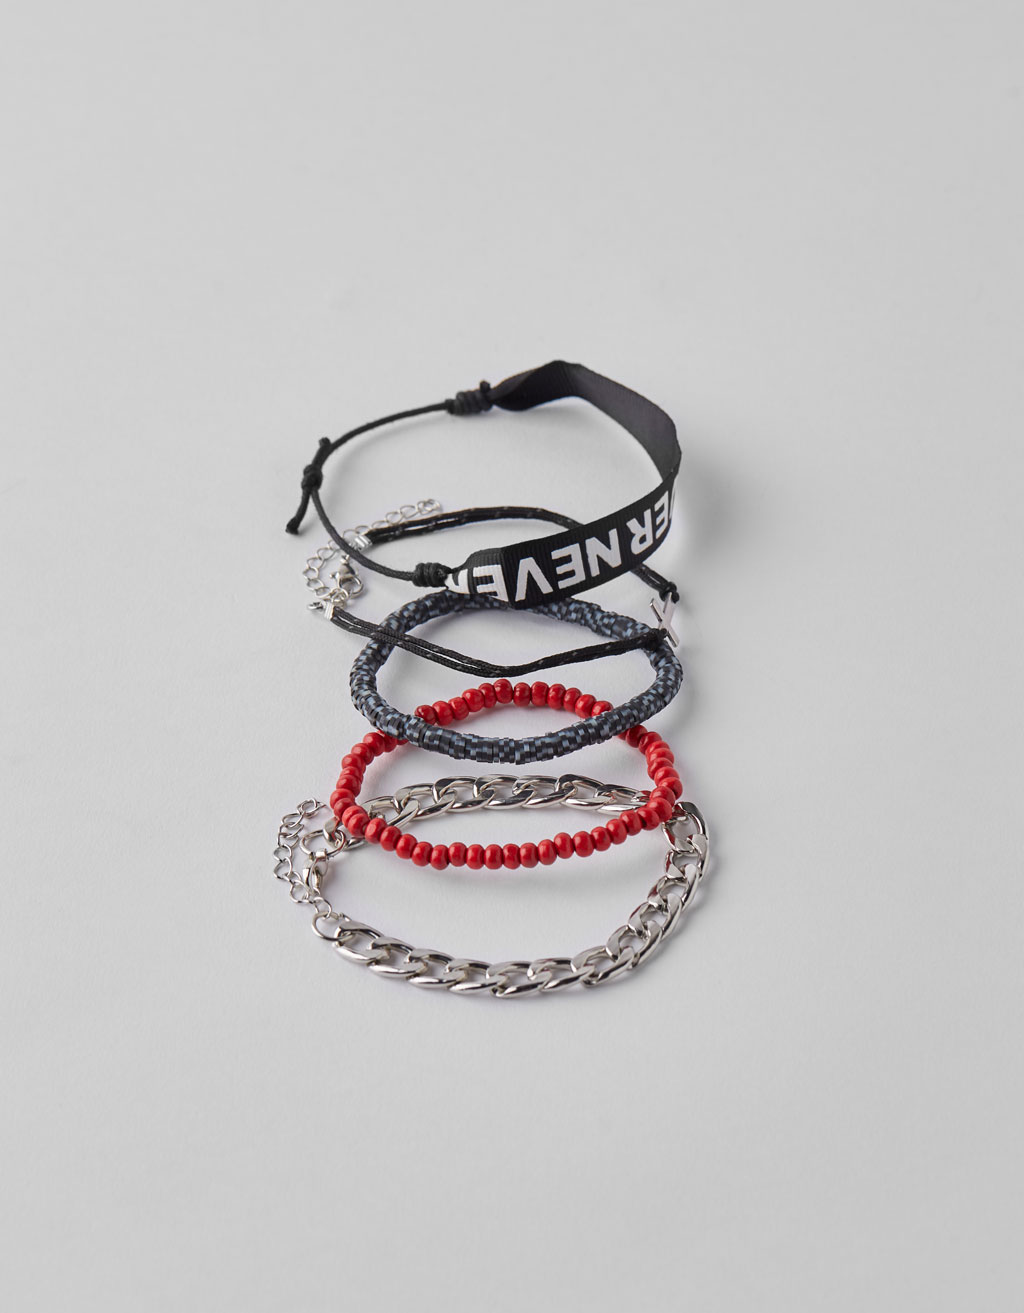 Set of 5 contrast bracelets